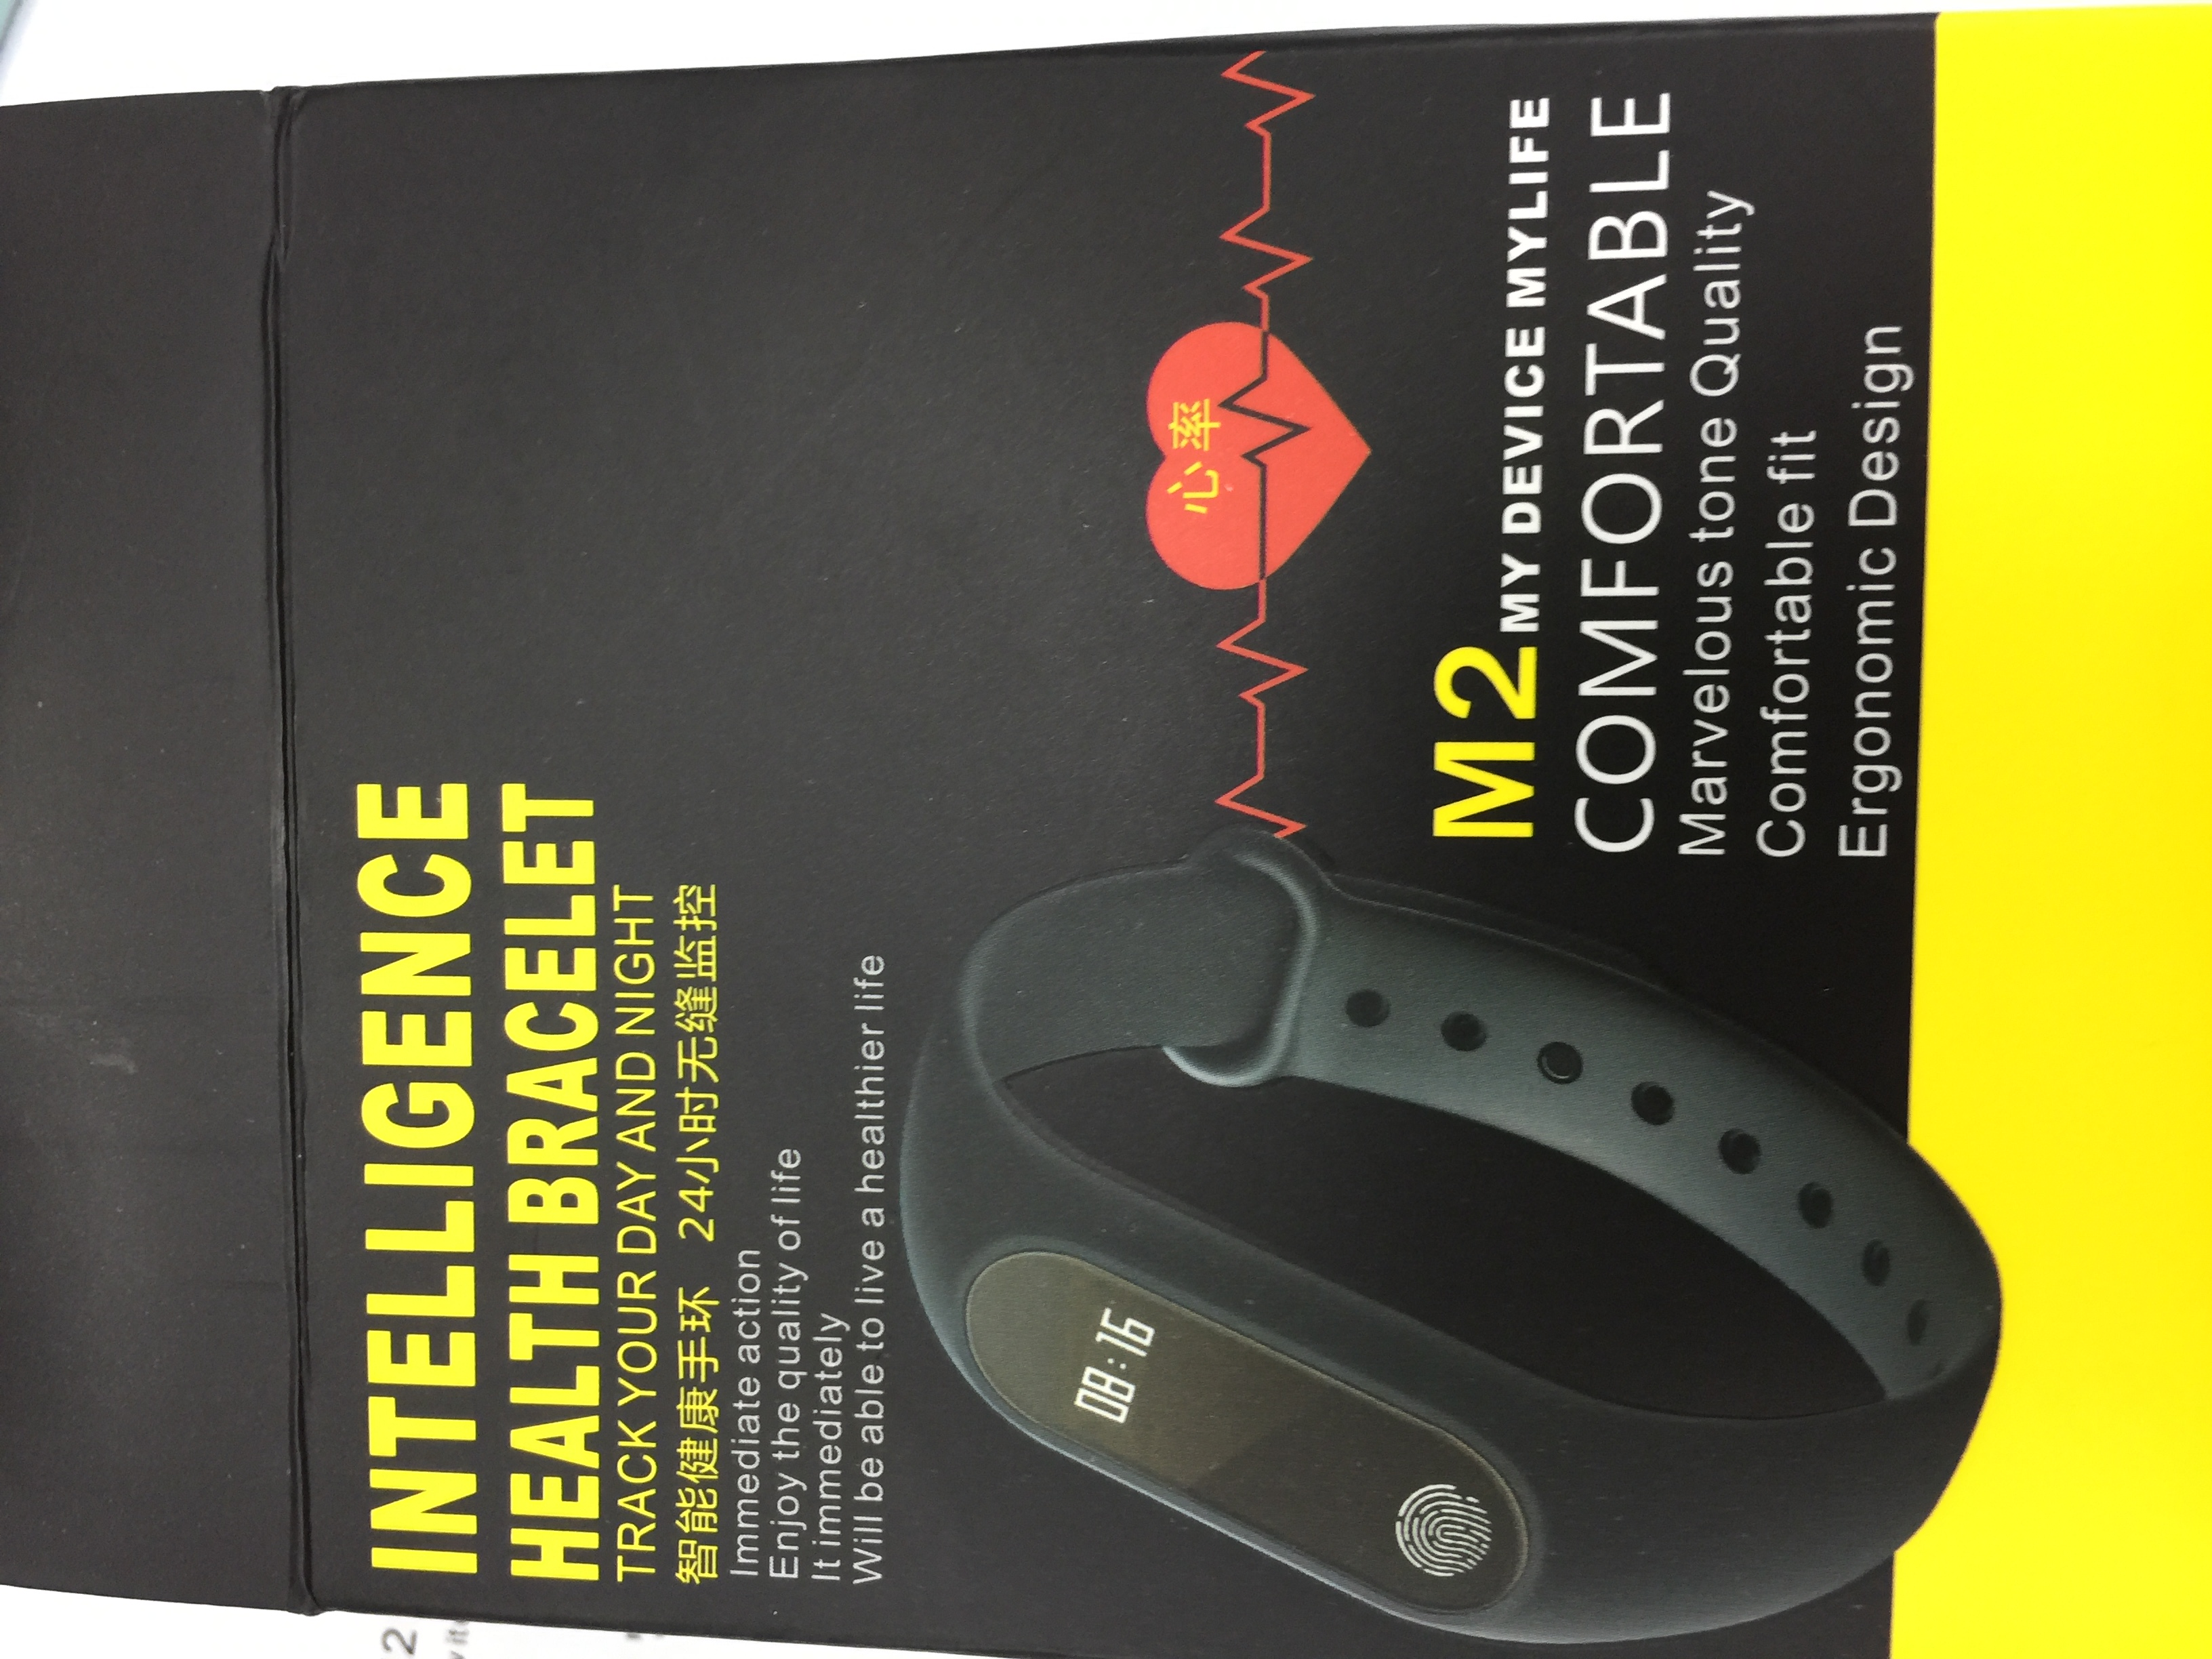 M2 Blood Pressure Heart Rate Monitor End 12 7 2019 315 Pm Jam Tangan Health Bracelet Dispute As Buyer Send Me The Wrong Product Shown Pls Arrange For Switching Or Refund Of Money